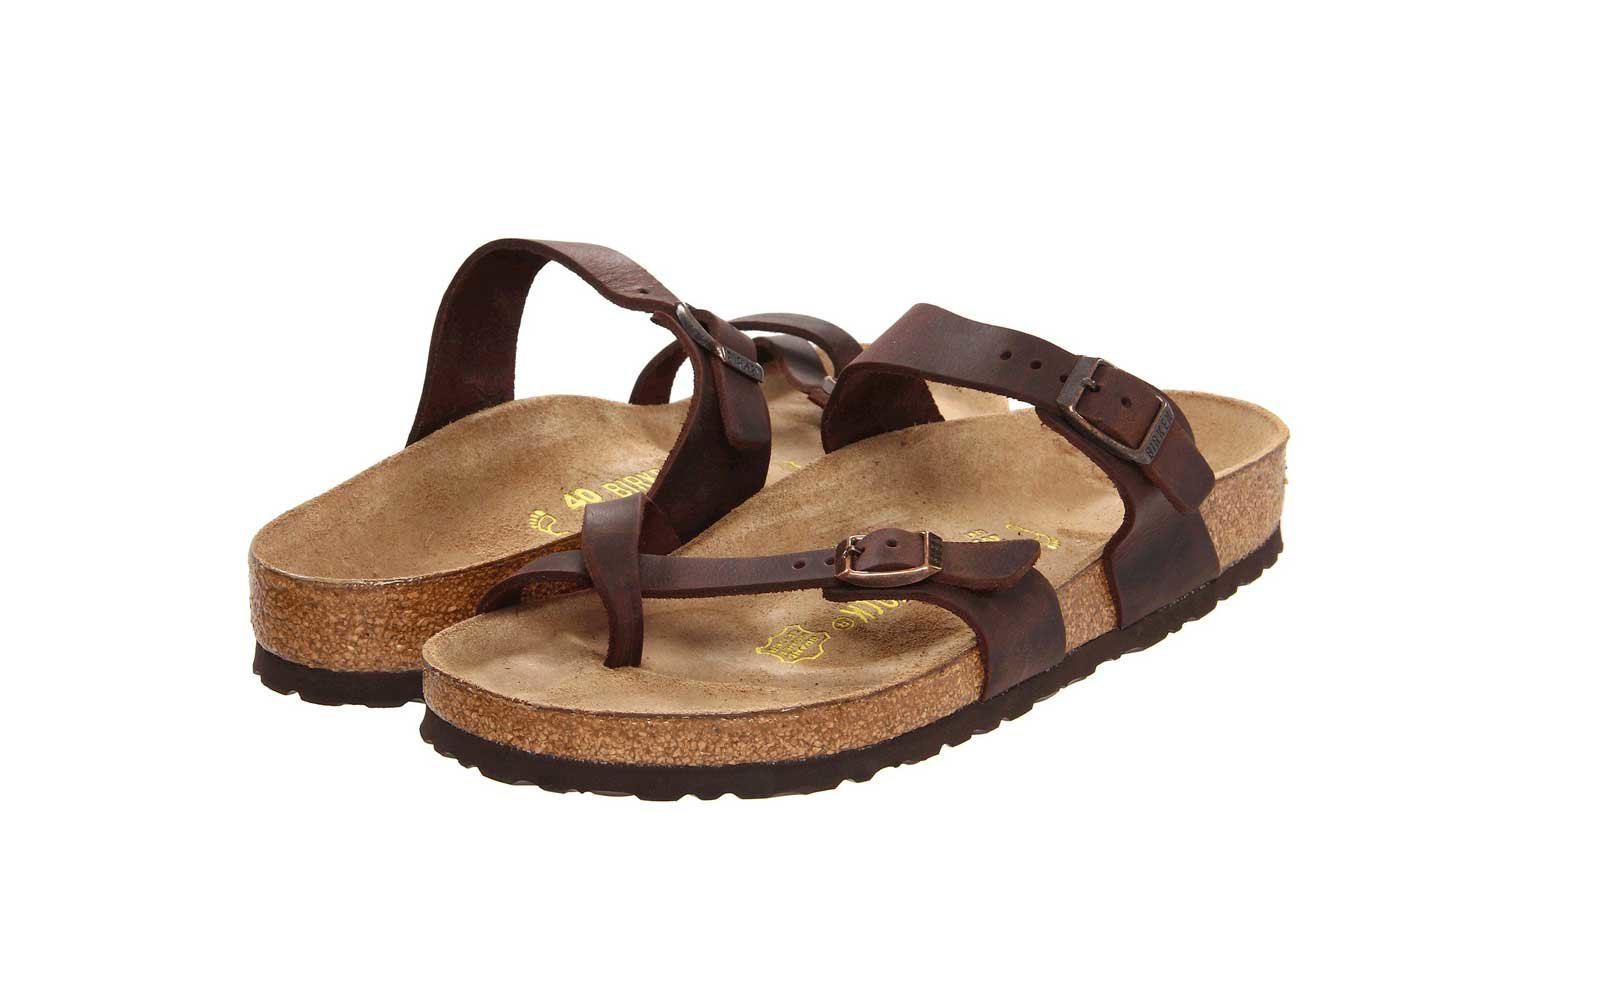 46b9ee4544da The Most Comfortable Walking Sandals for Women